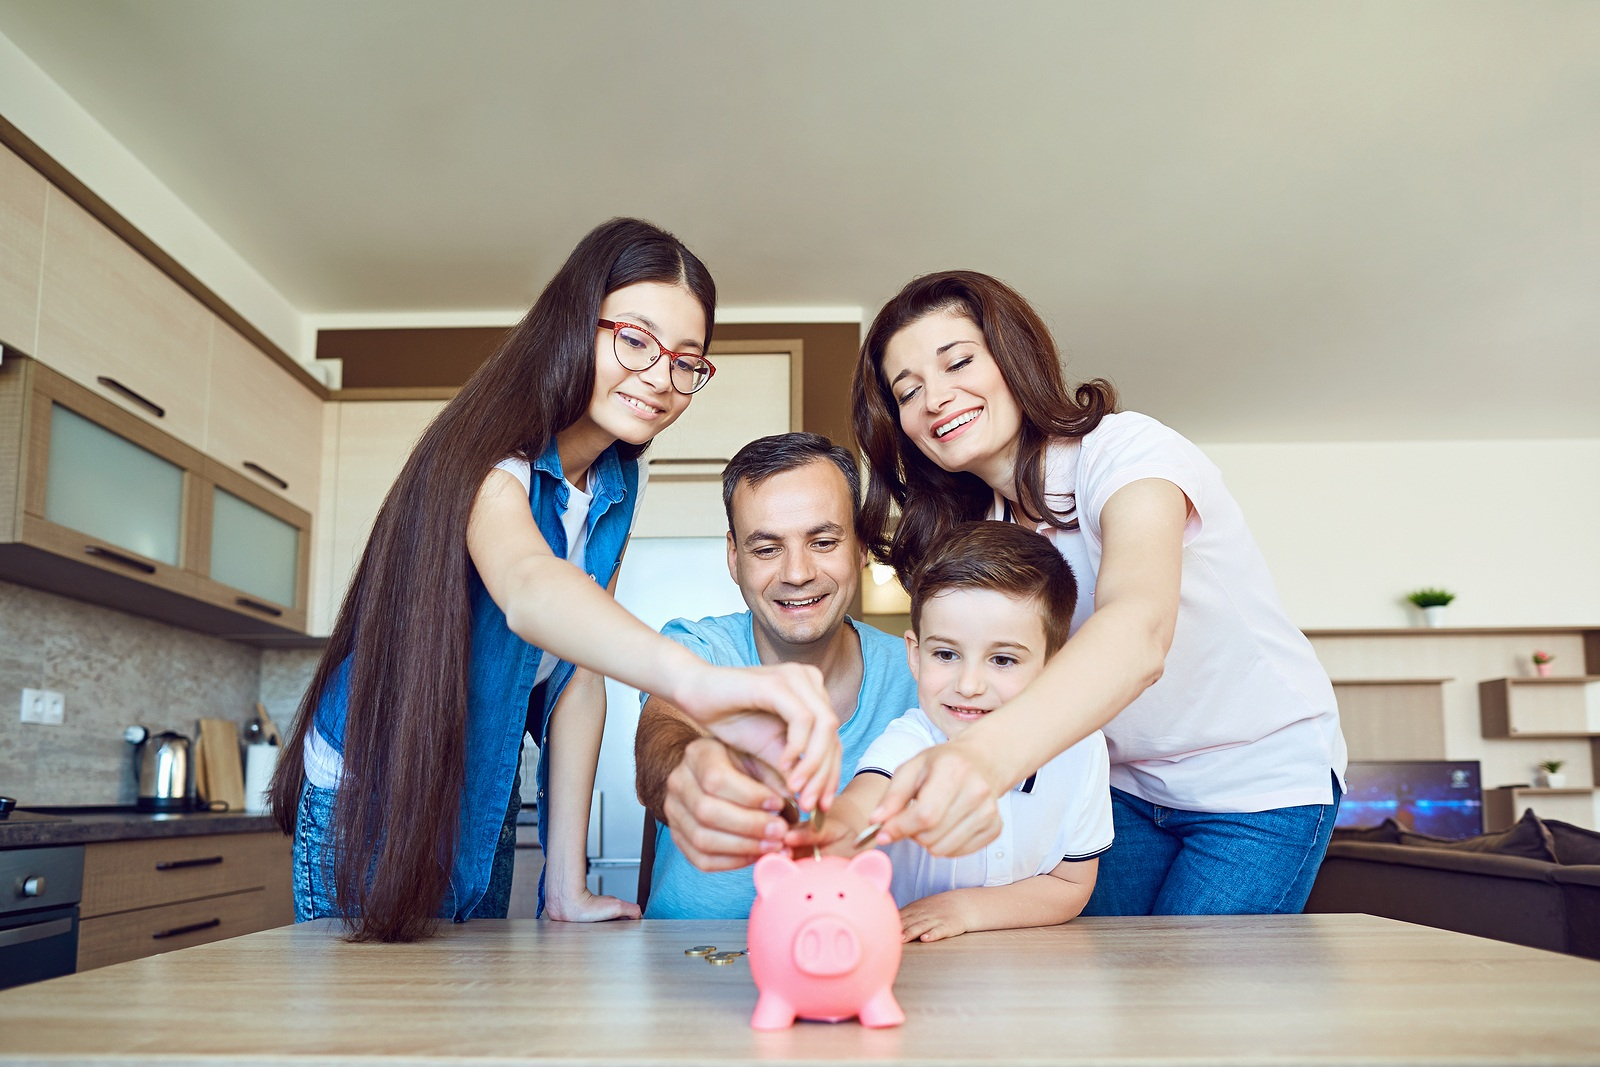 ways your family can save money around your home